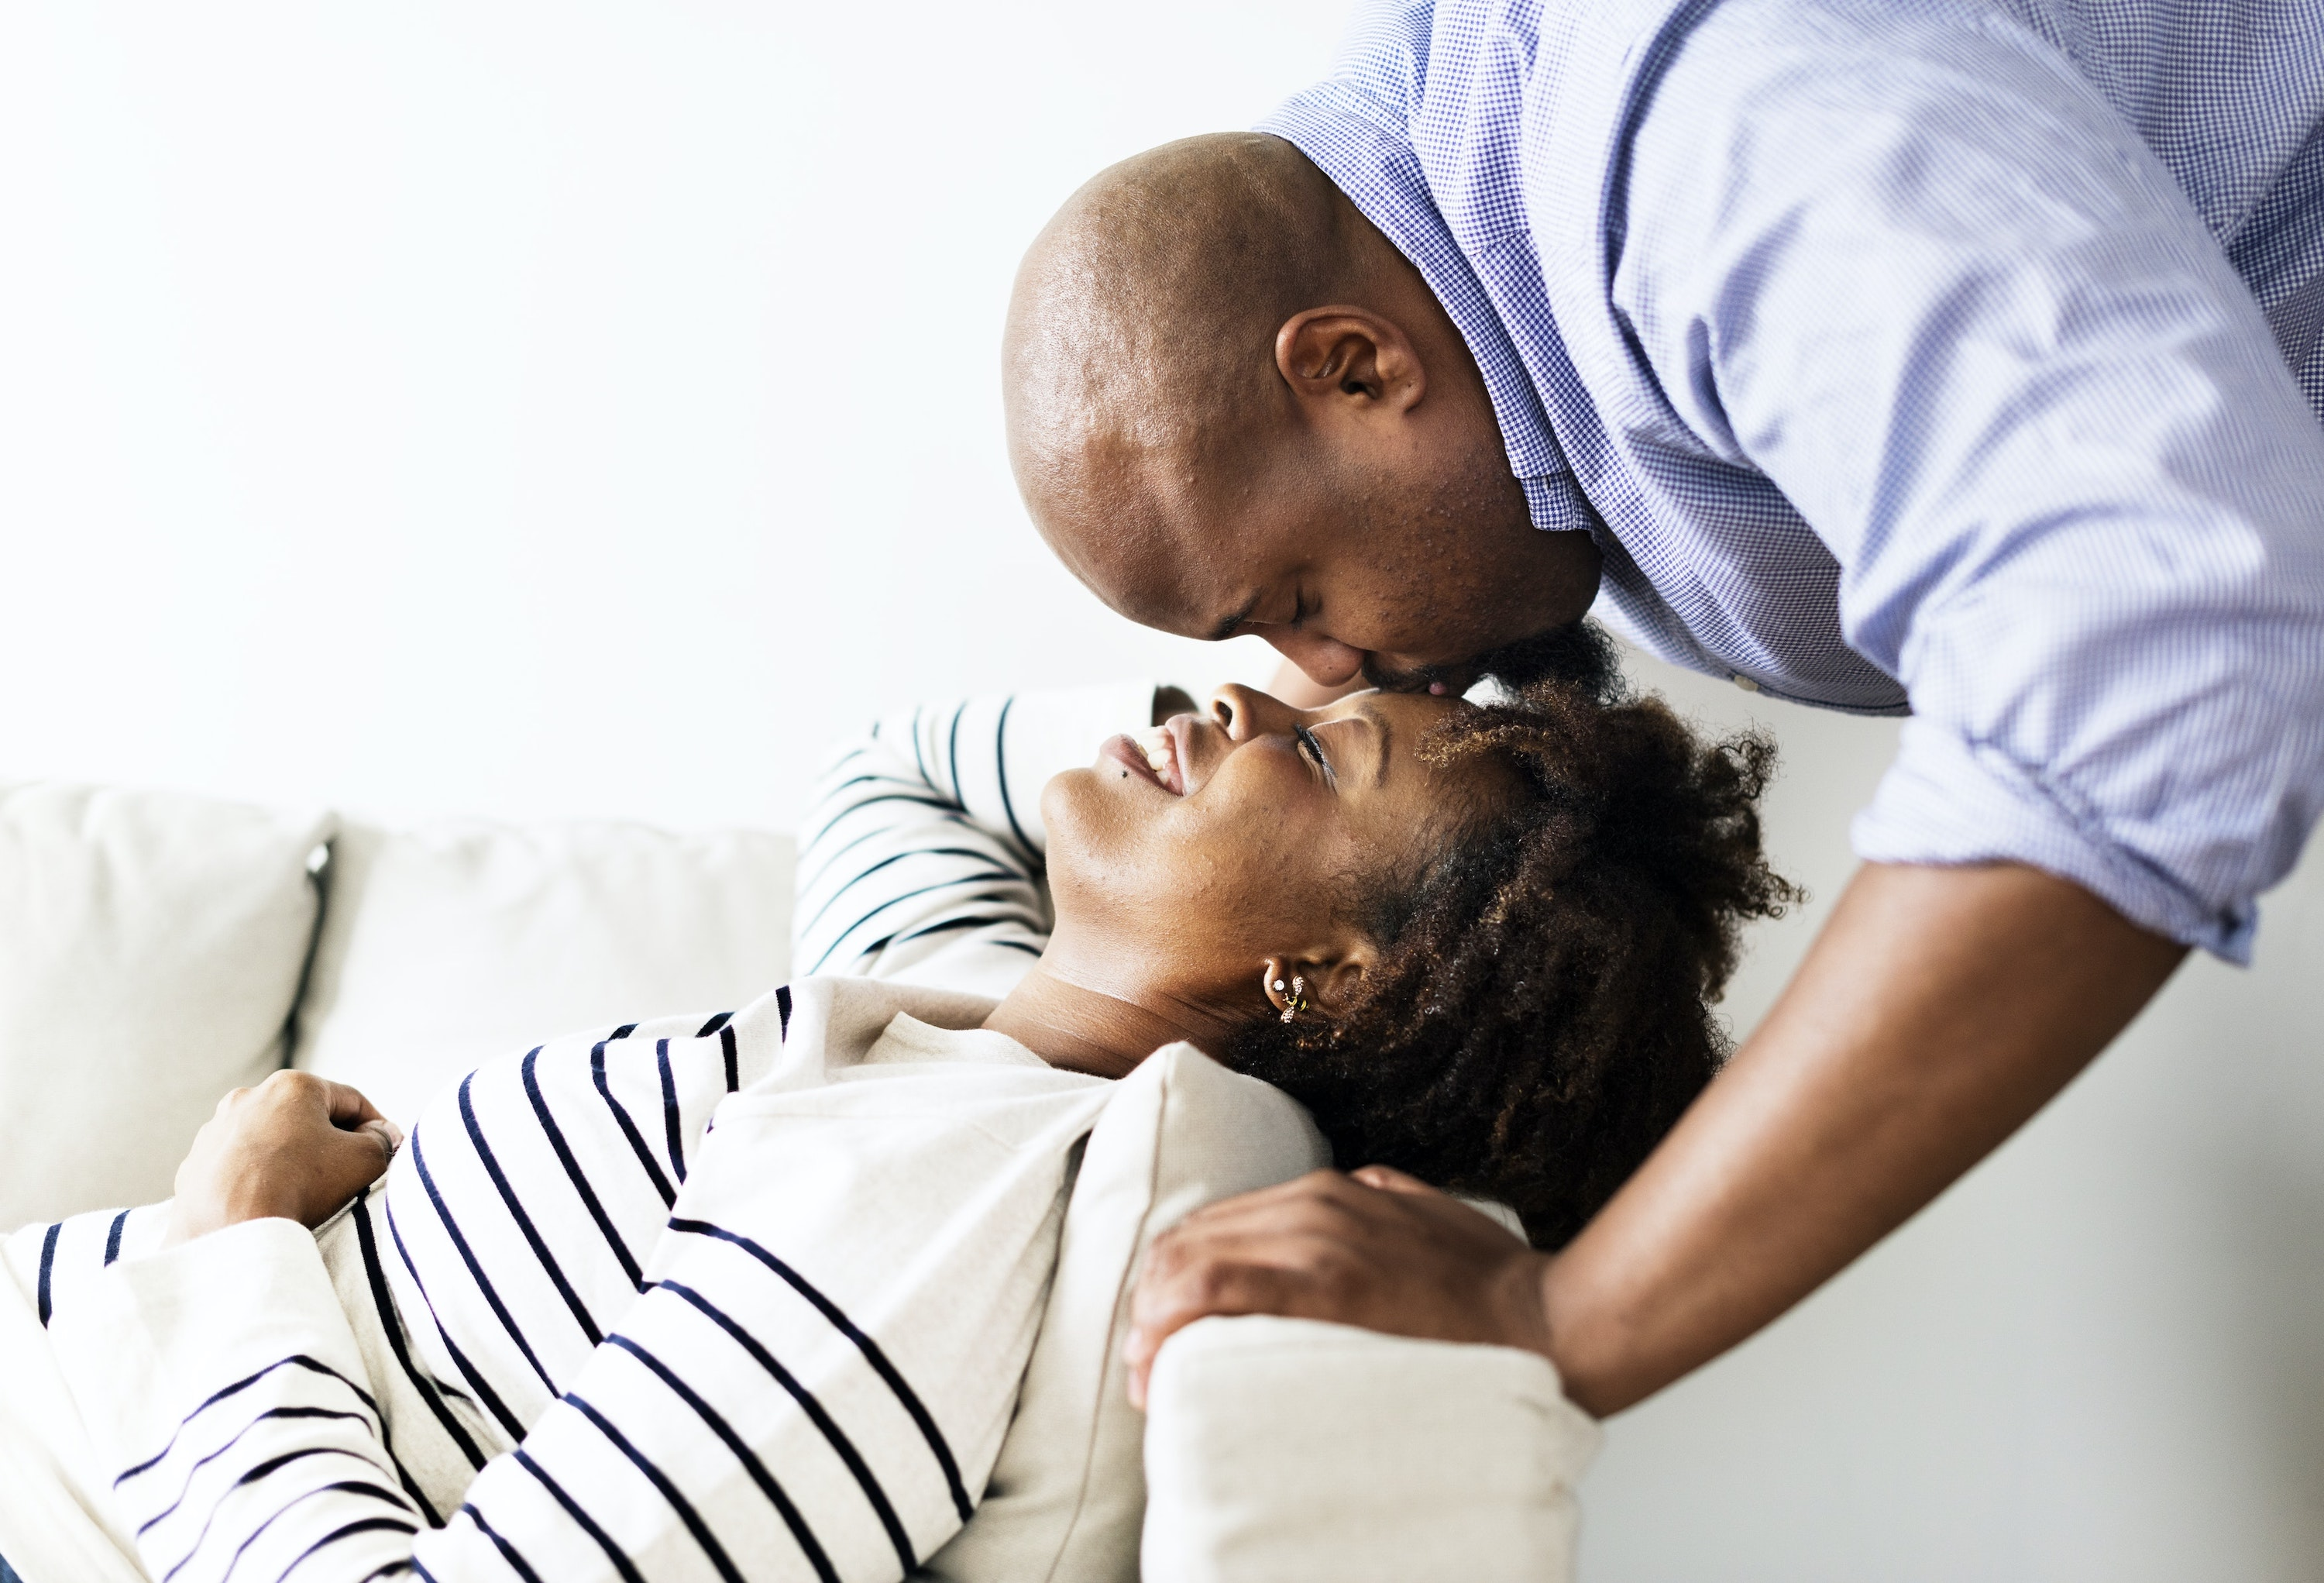 Dirty Talk For Her 11 Ways To Turn Her On With Your Words Regain